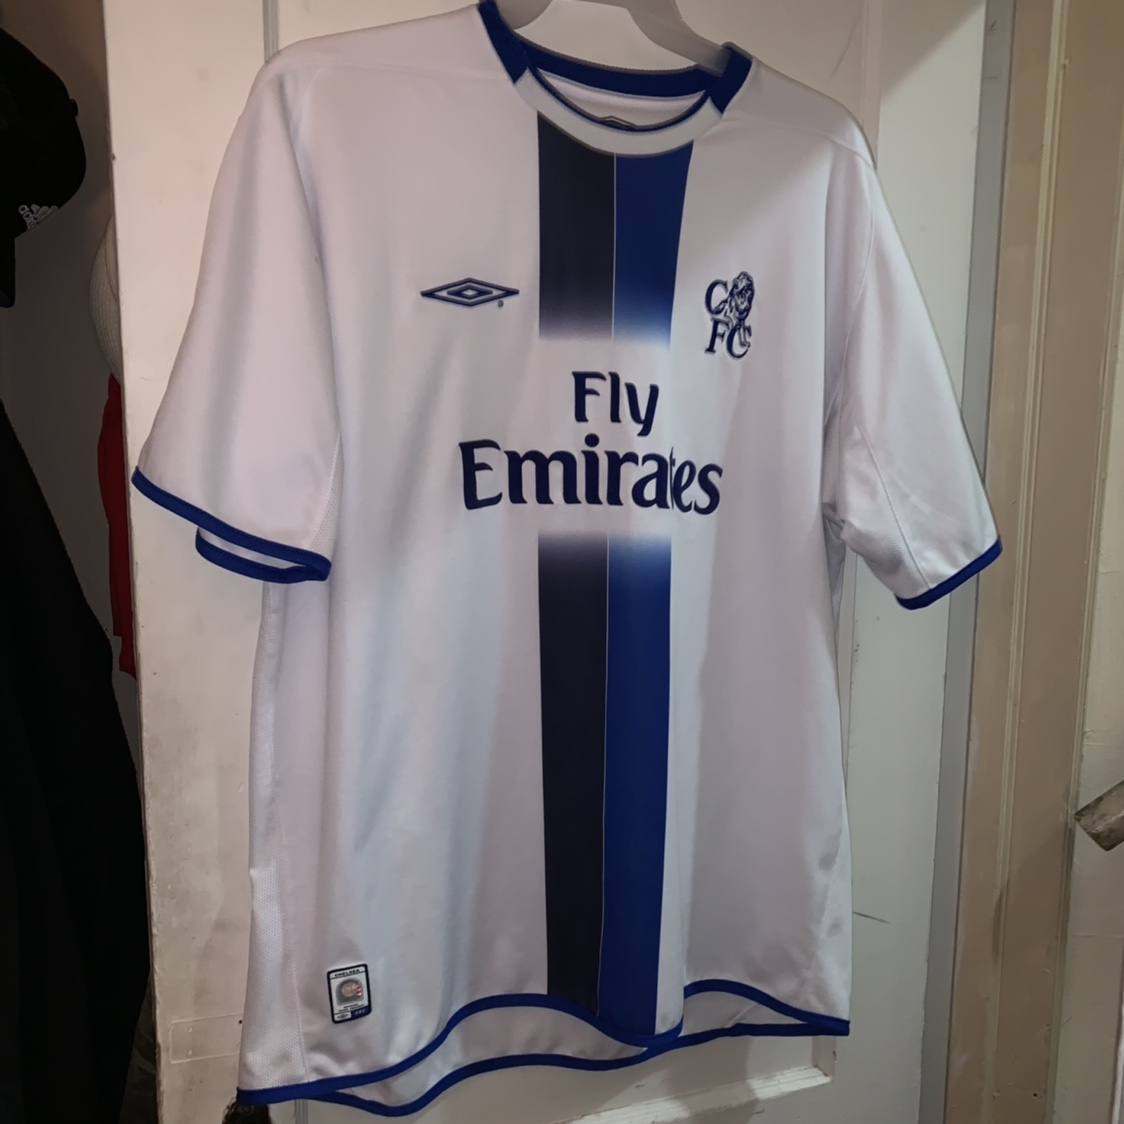 the best attitude 1525e 34aa6 2003-2004 Chelsea Fly Emirates Jersey UMBRO Size... - Depop